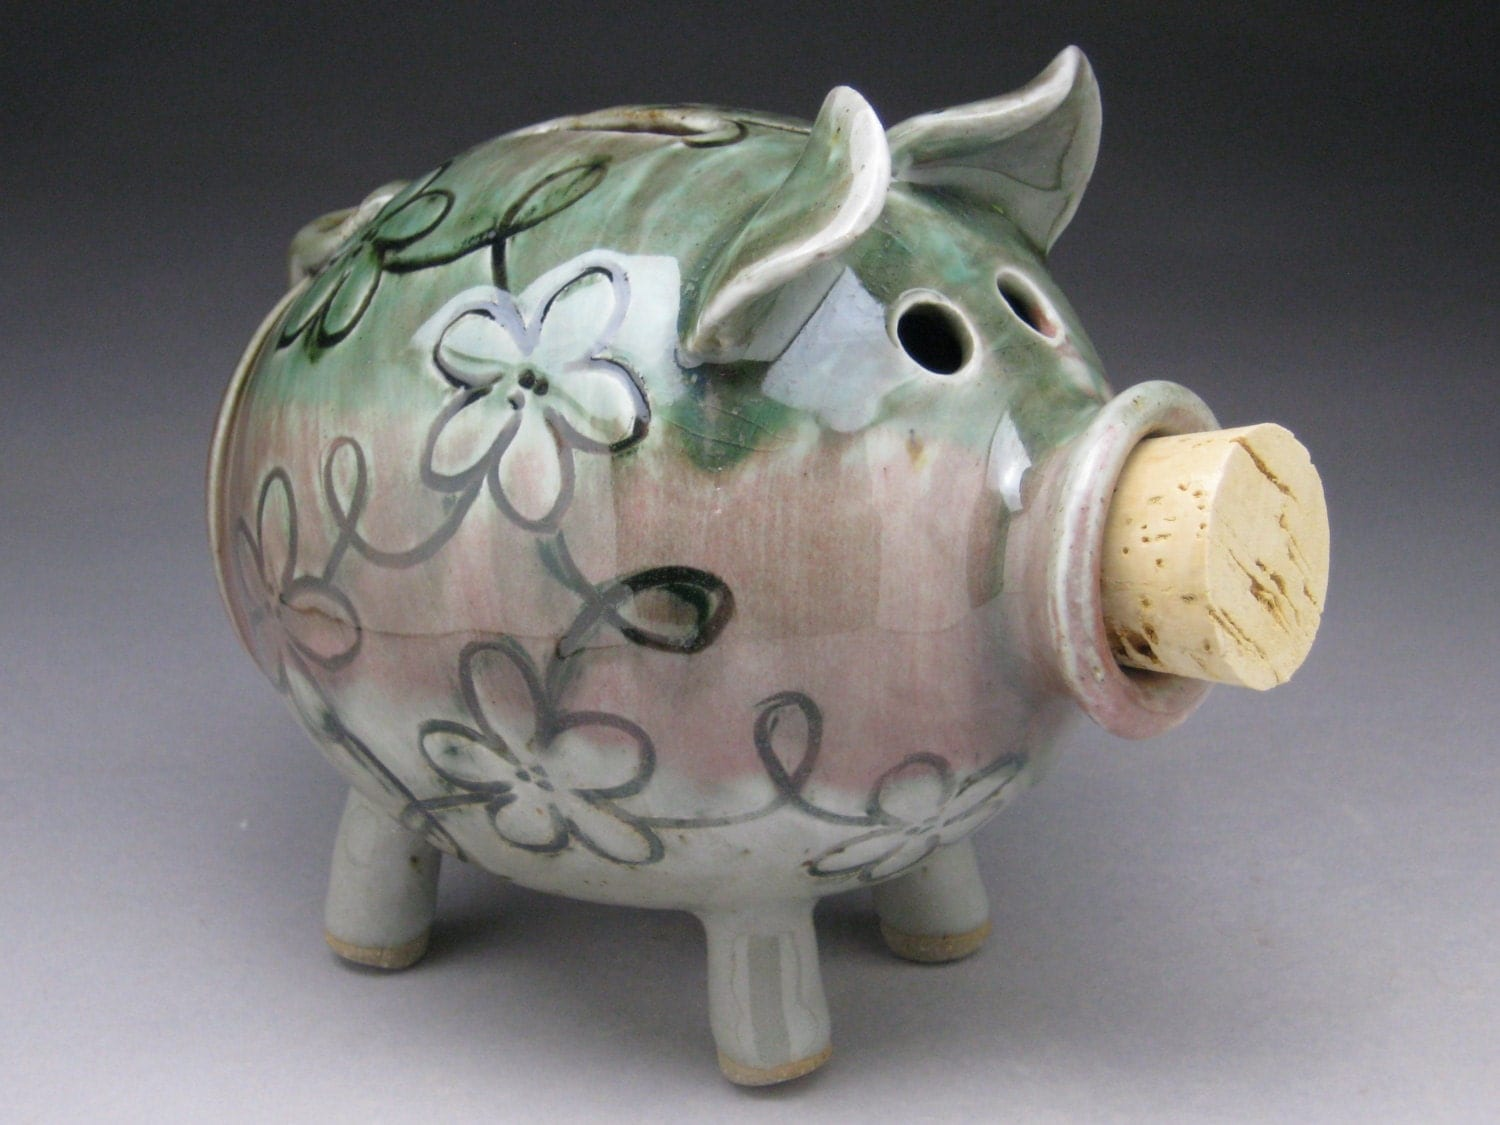 Pink And Green Ceramic Piggy Bank With Whimsical Flower Design